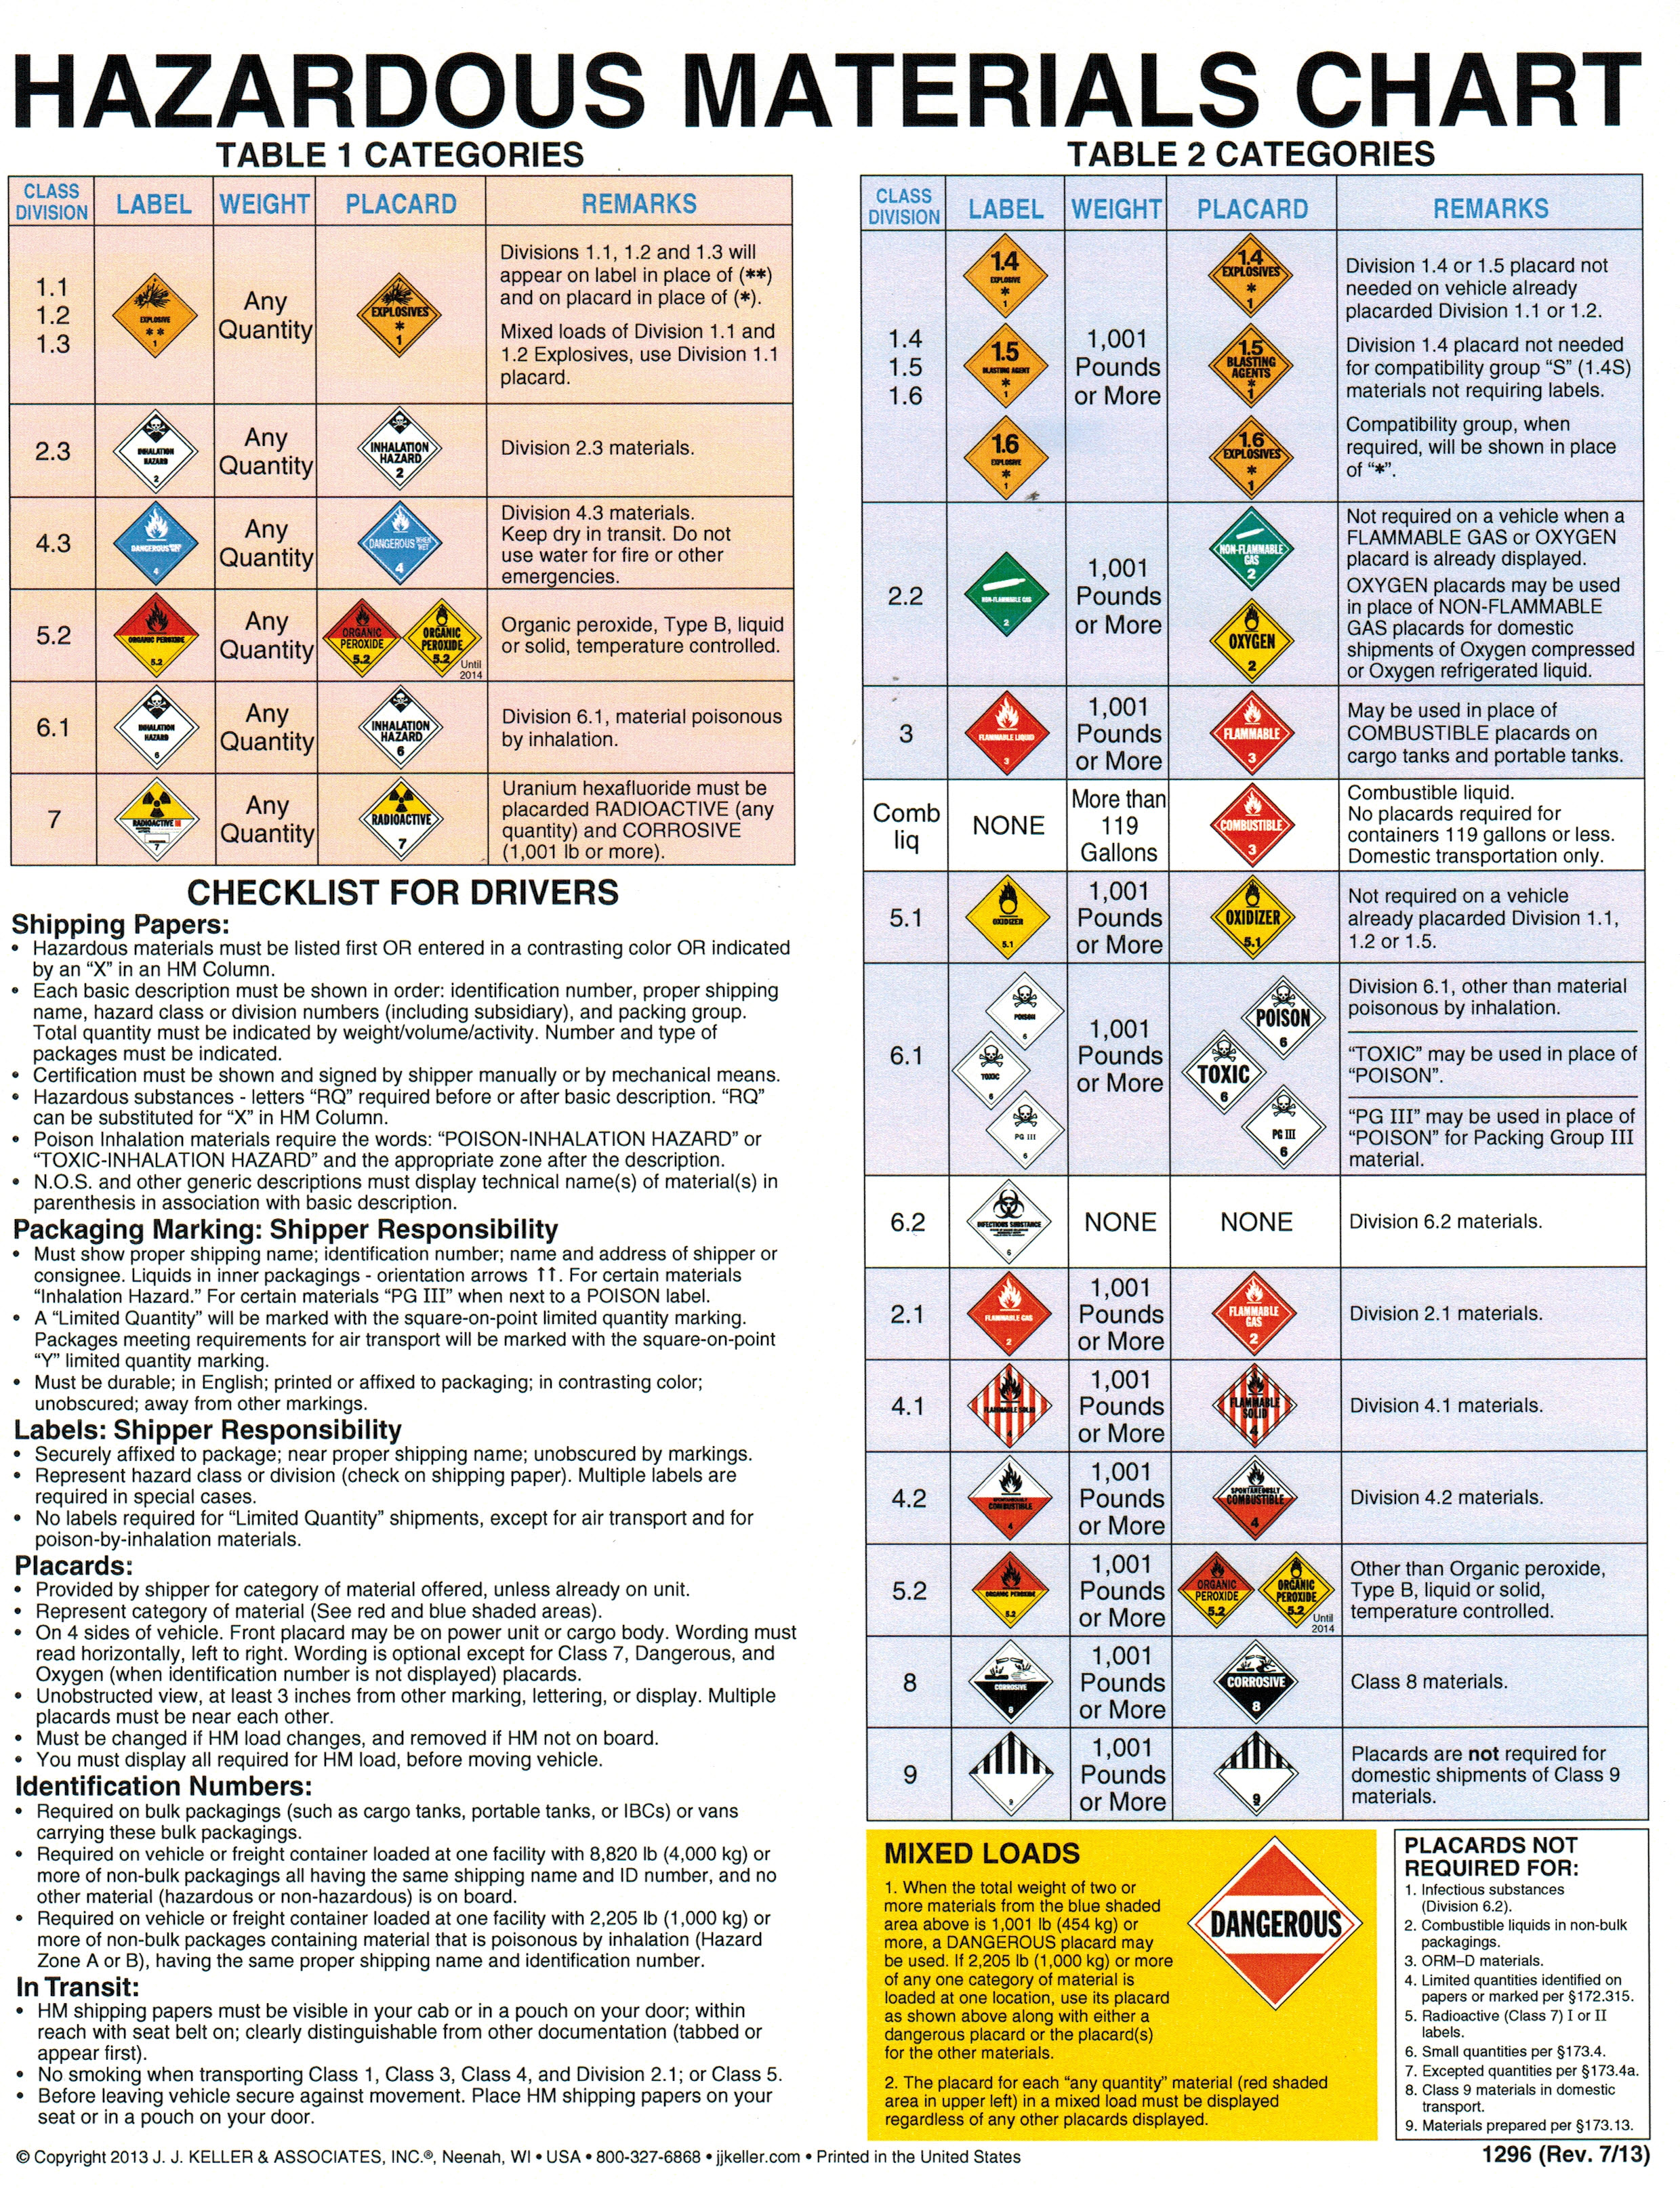 SST Safety Courses - HazMat C